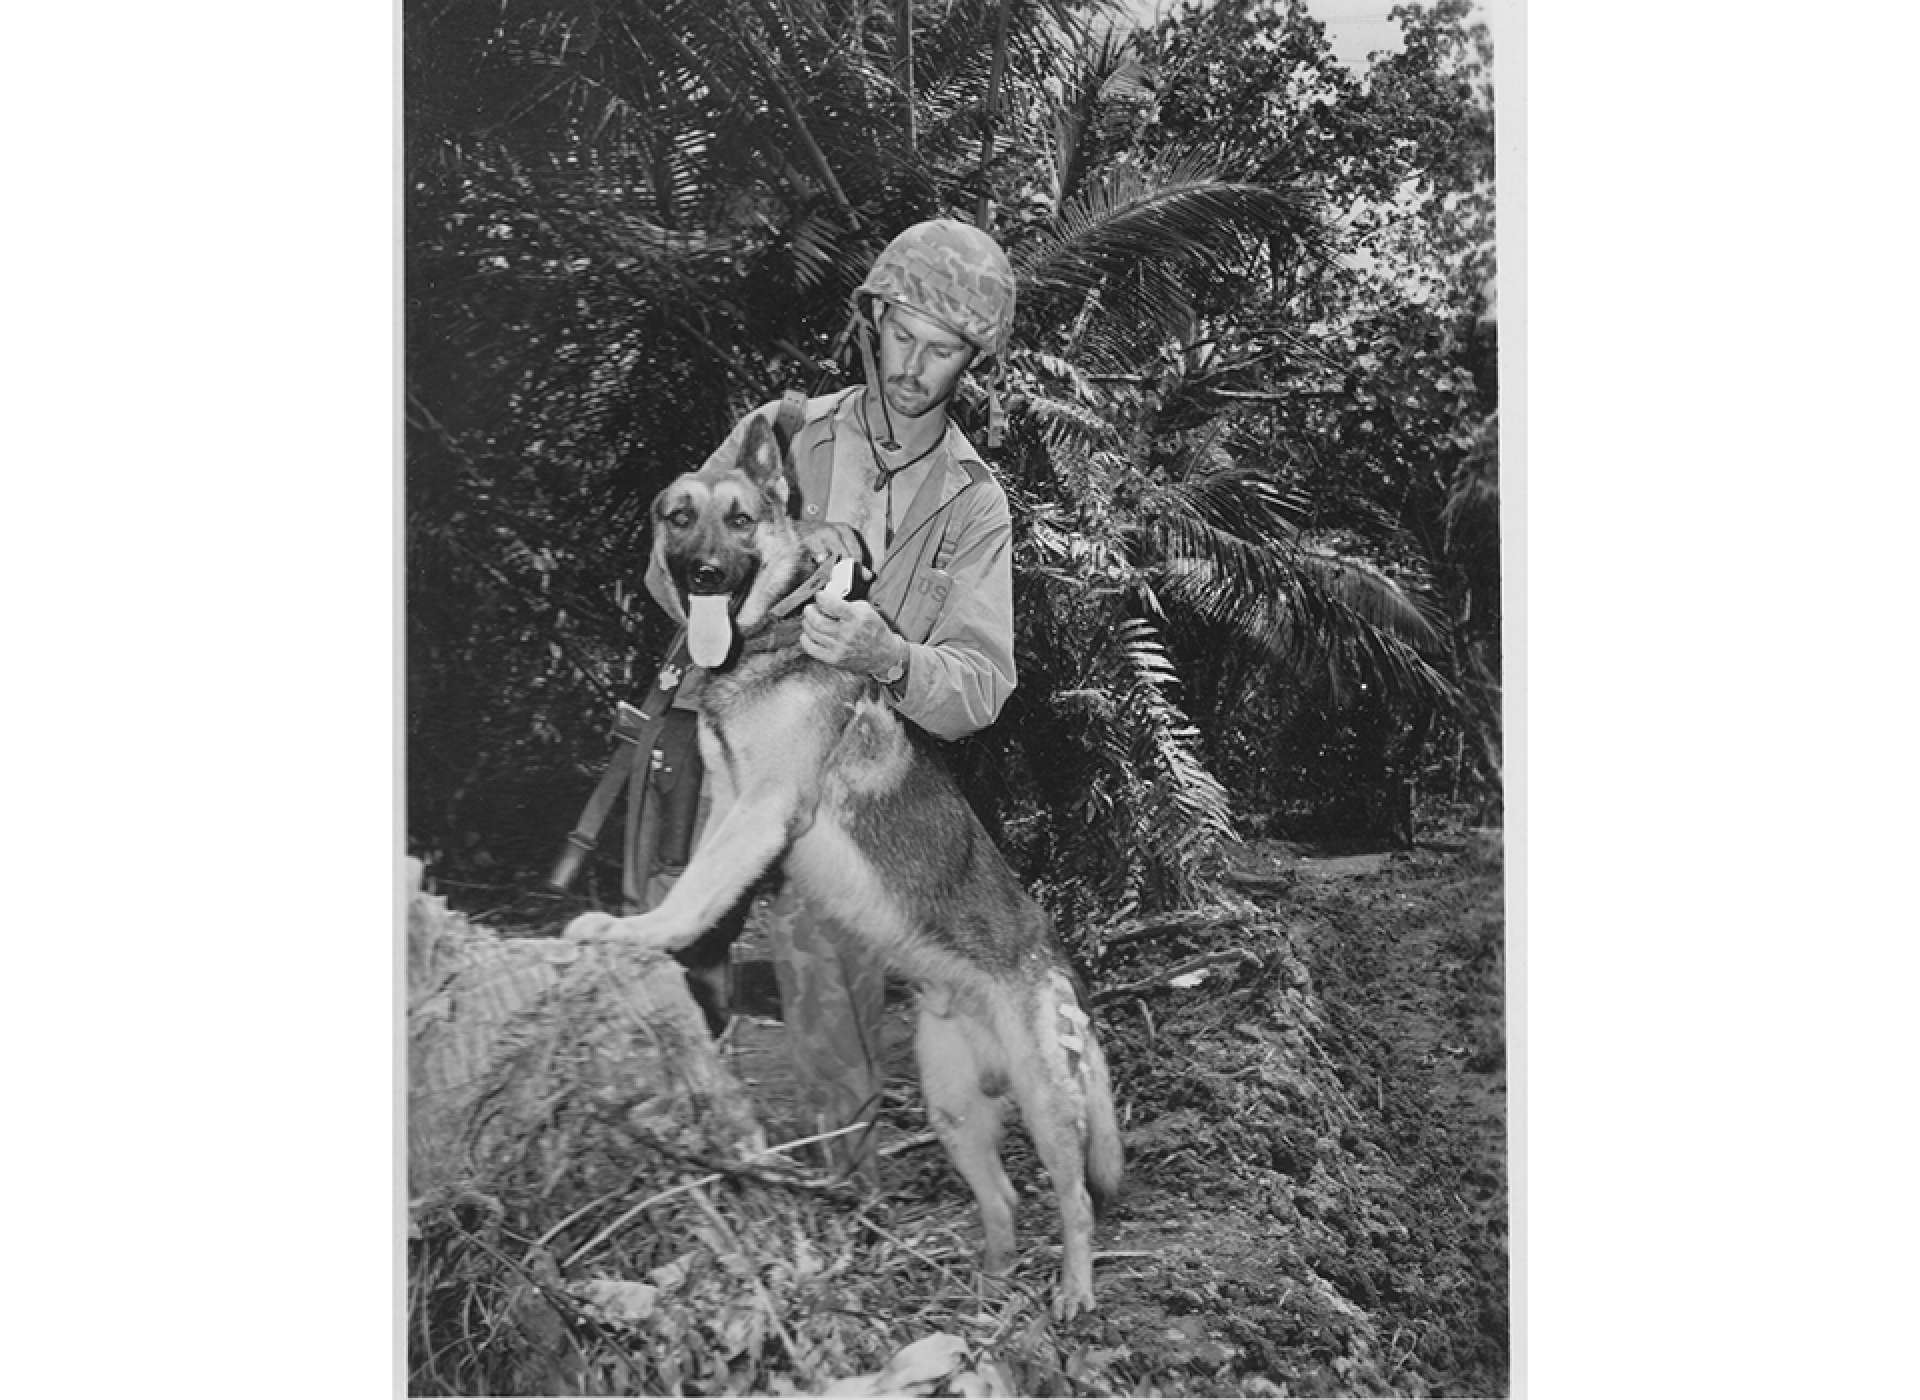 Pfc. John Kleeman and messenger dog Caesar on the west coast of Bougainville. Notice the bullet wound on Caesar's left shoulder, received during a Japanese attack. National Archives photo.